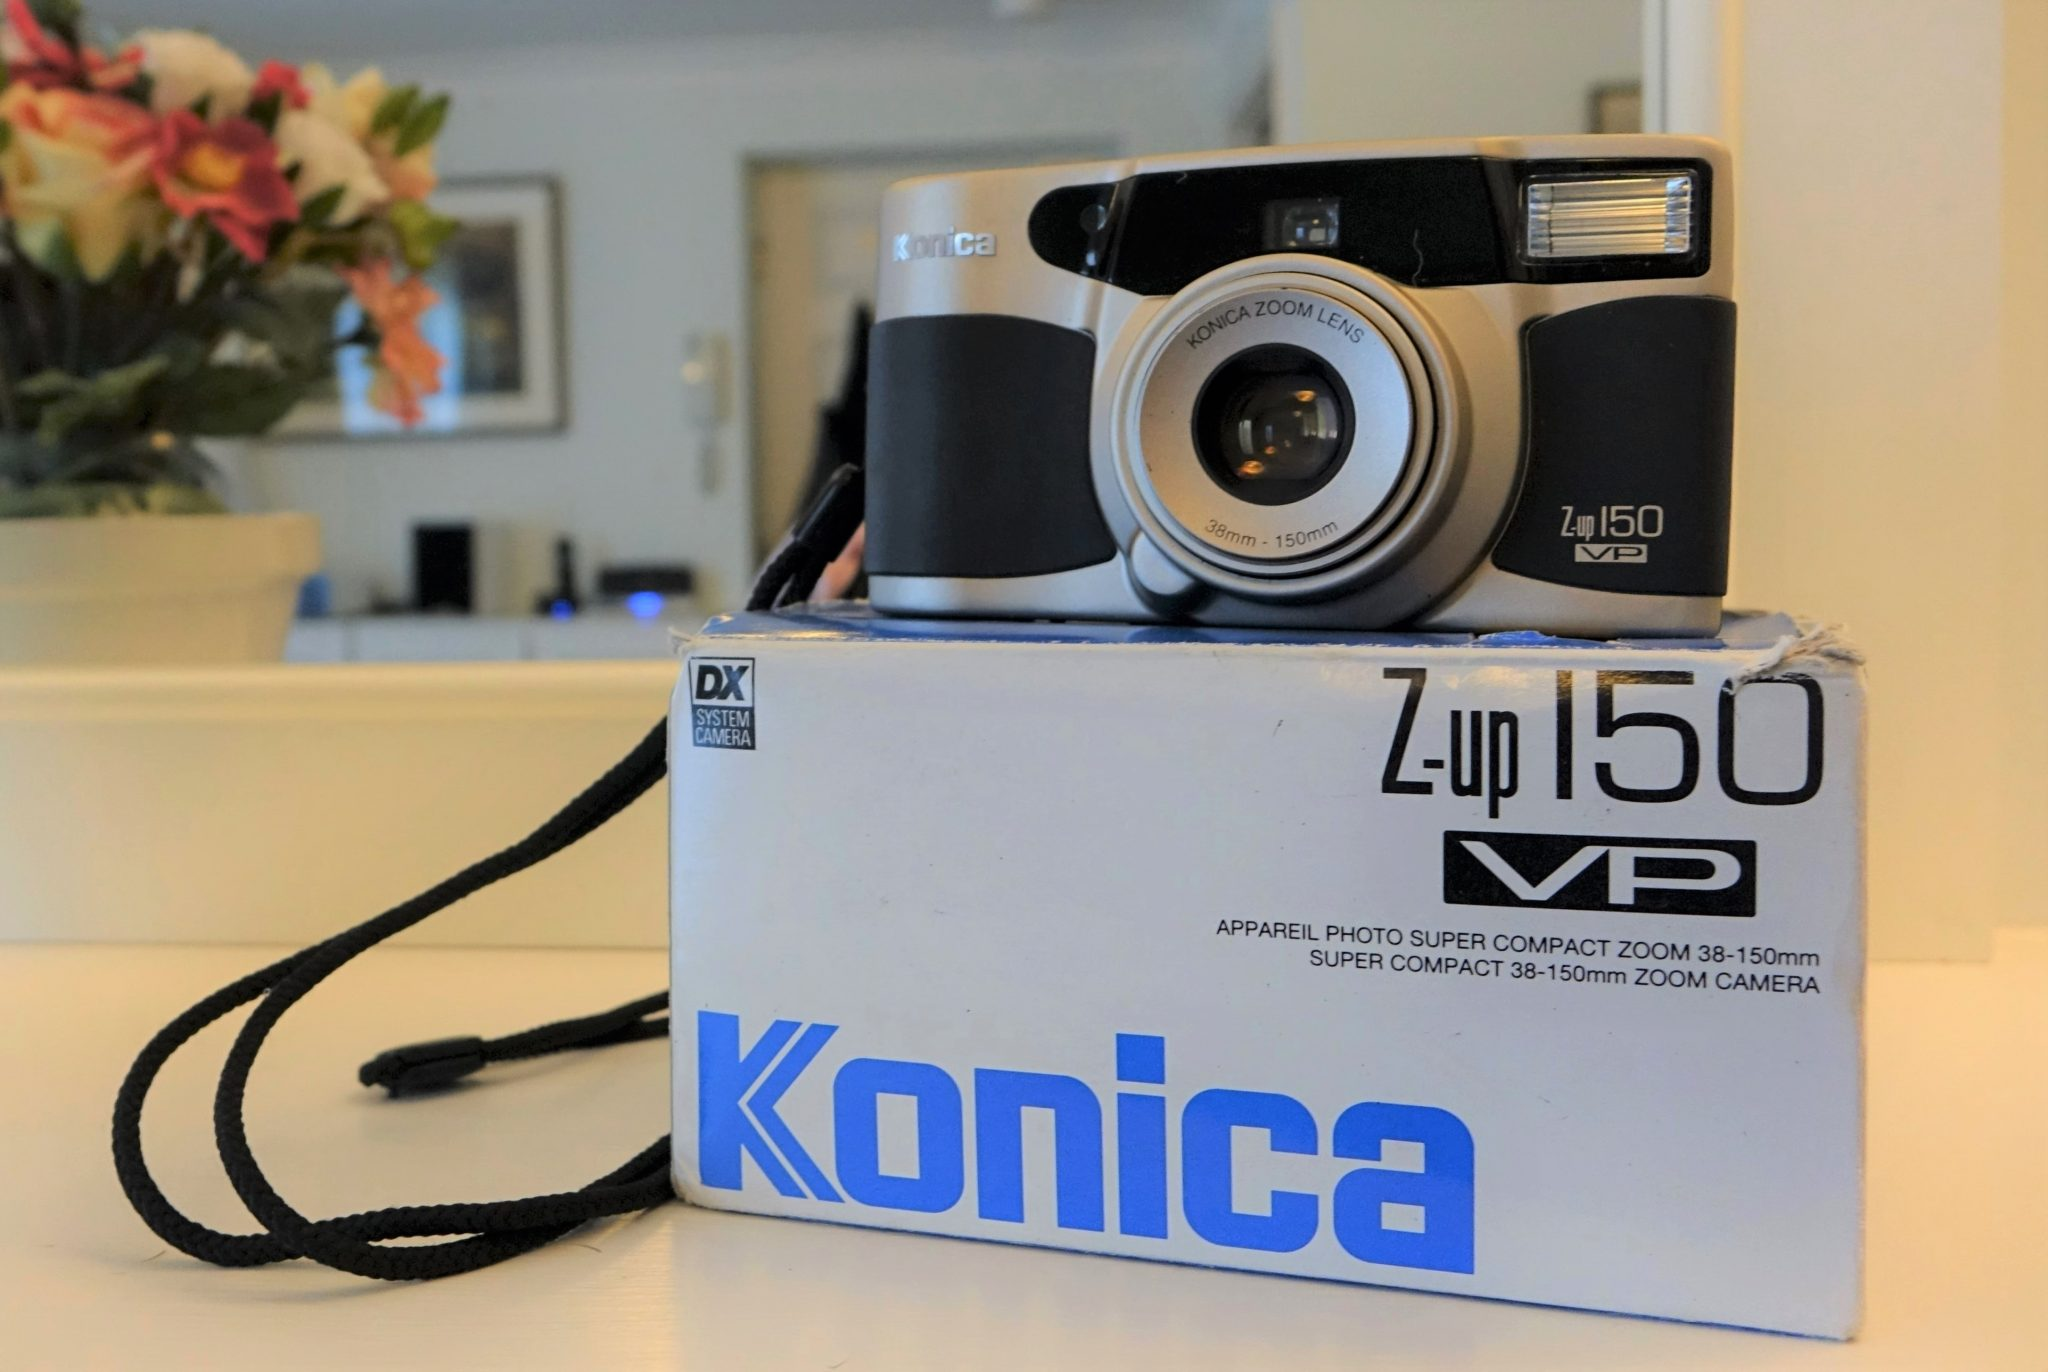 Konica Z-up 150 VP